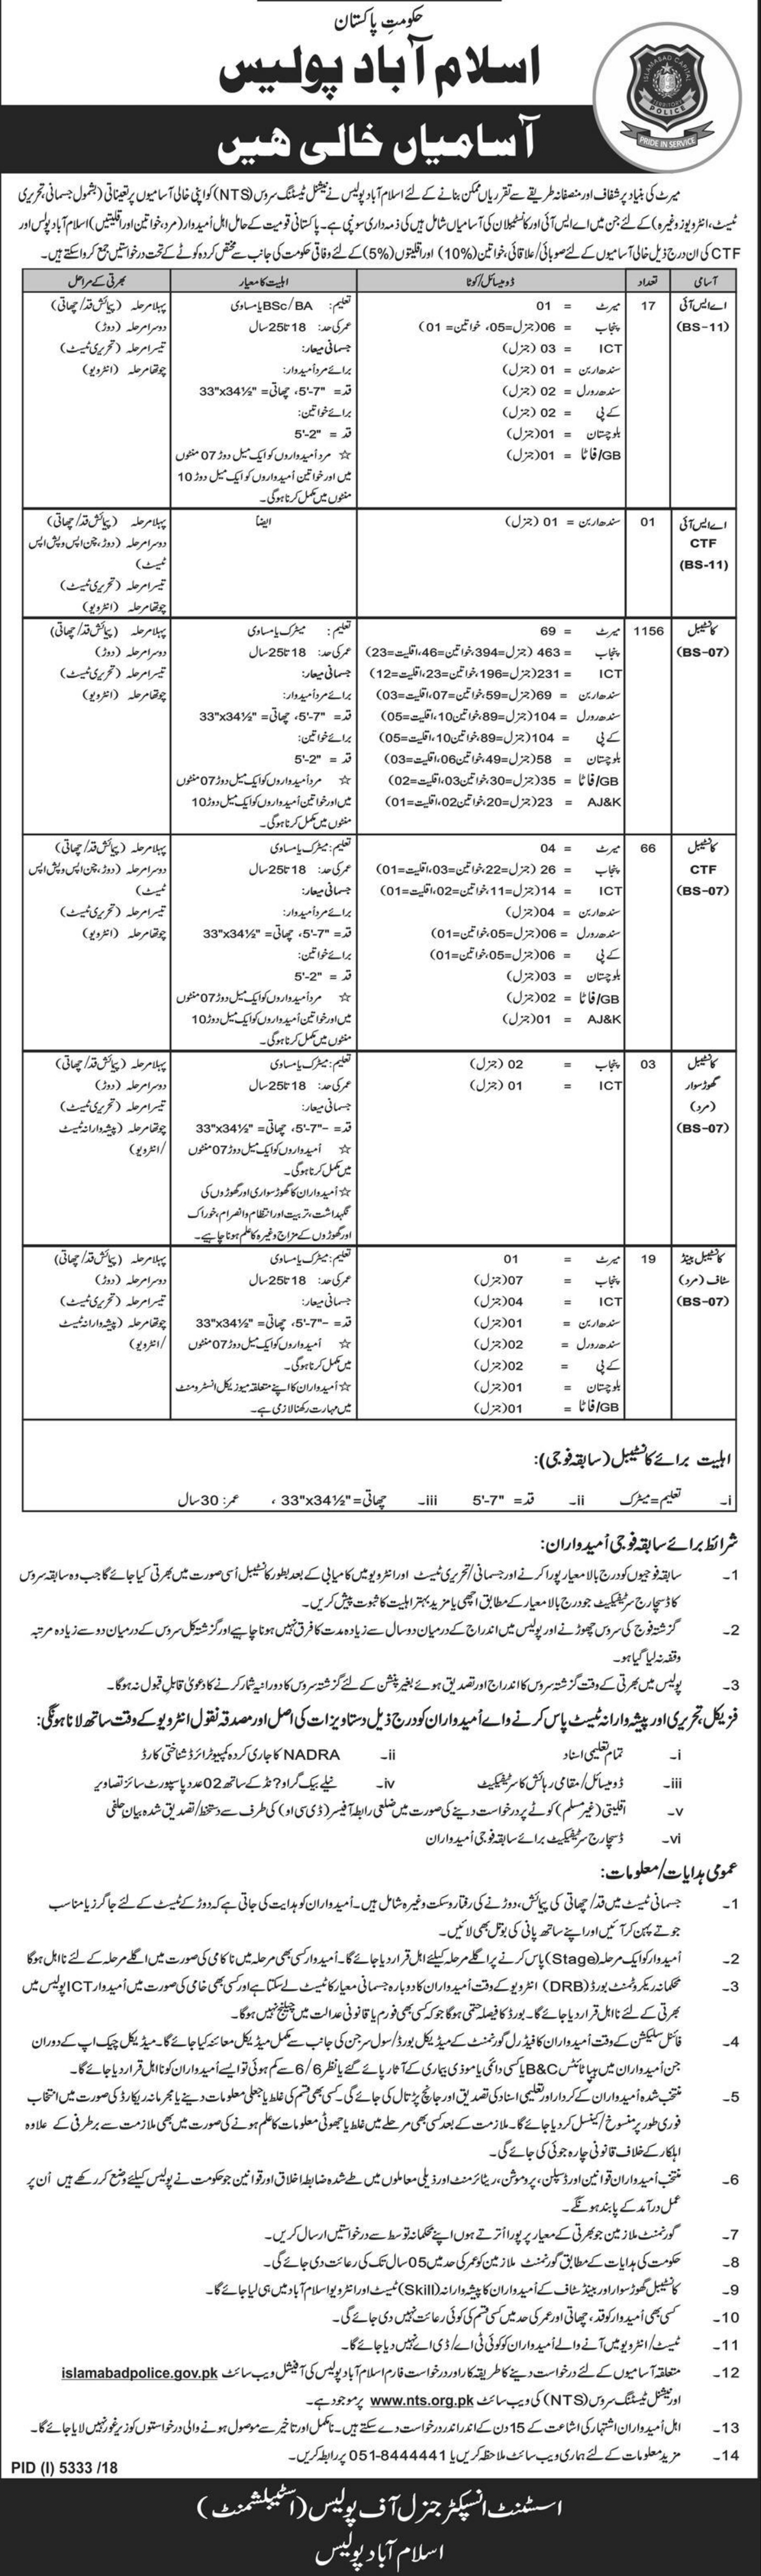 Islamabad Police Jobs 2019 Apply through NTS